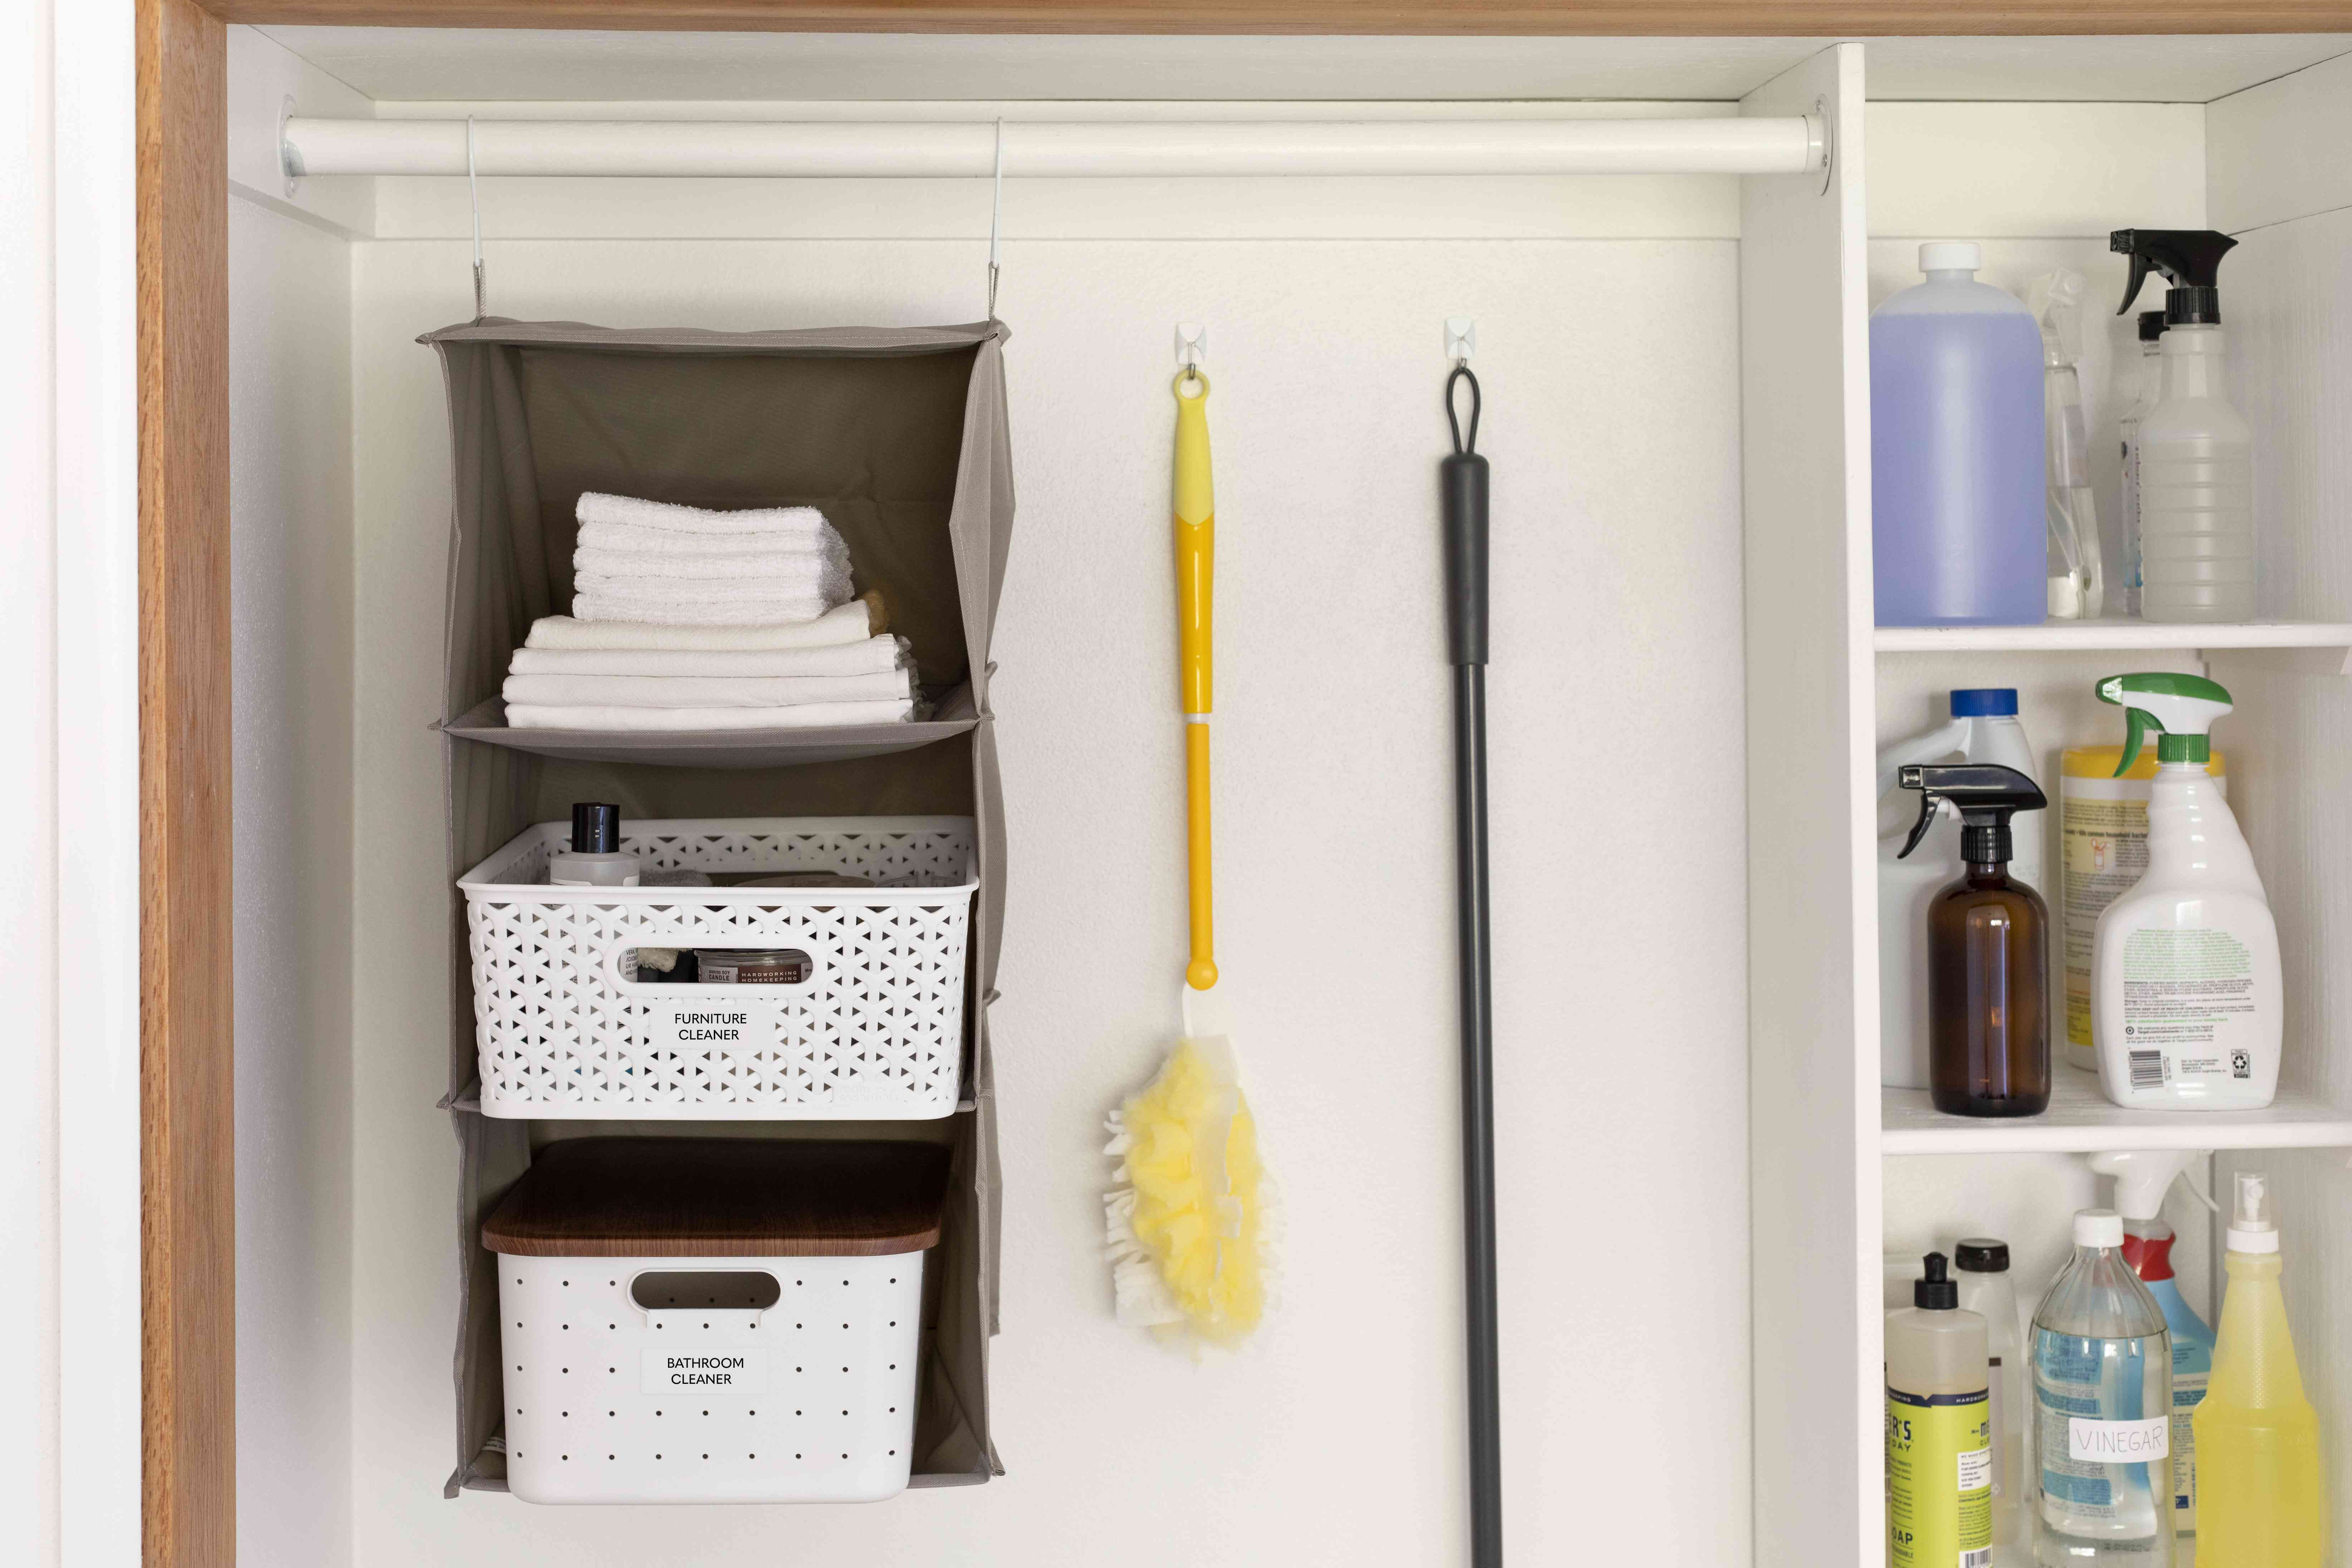 Hanging shelves inside closet with brush and broom hanging veritcally